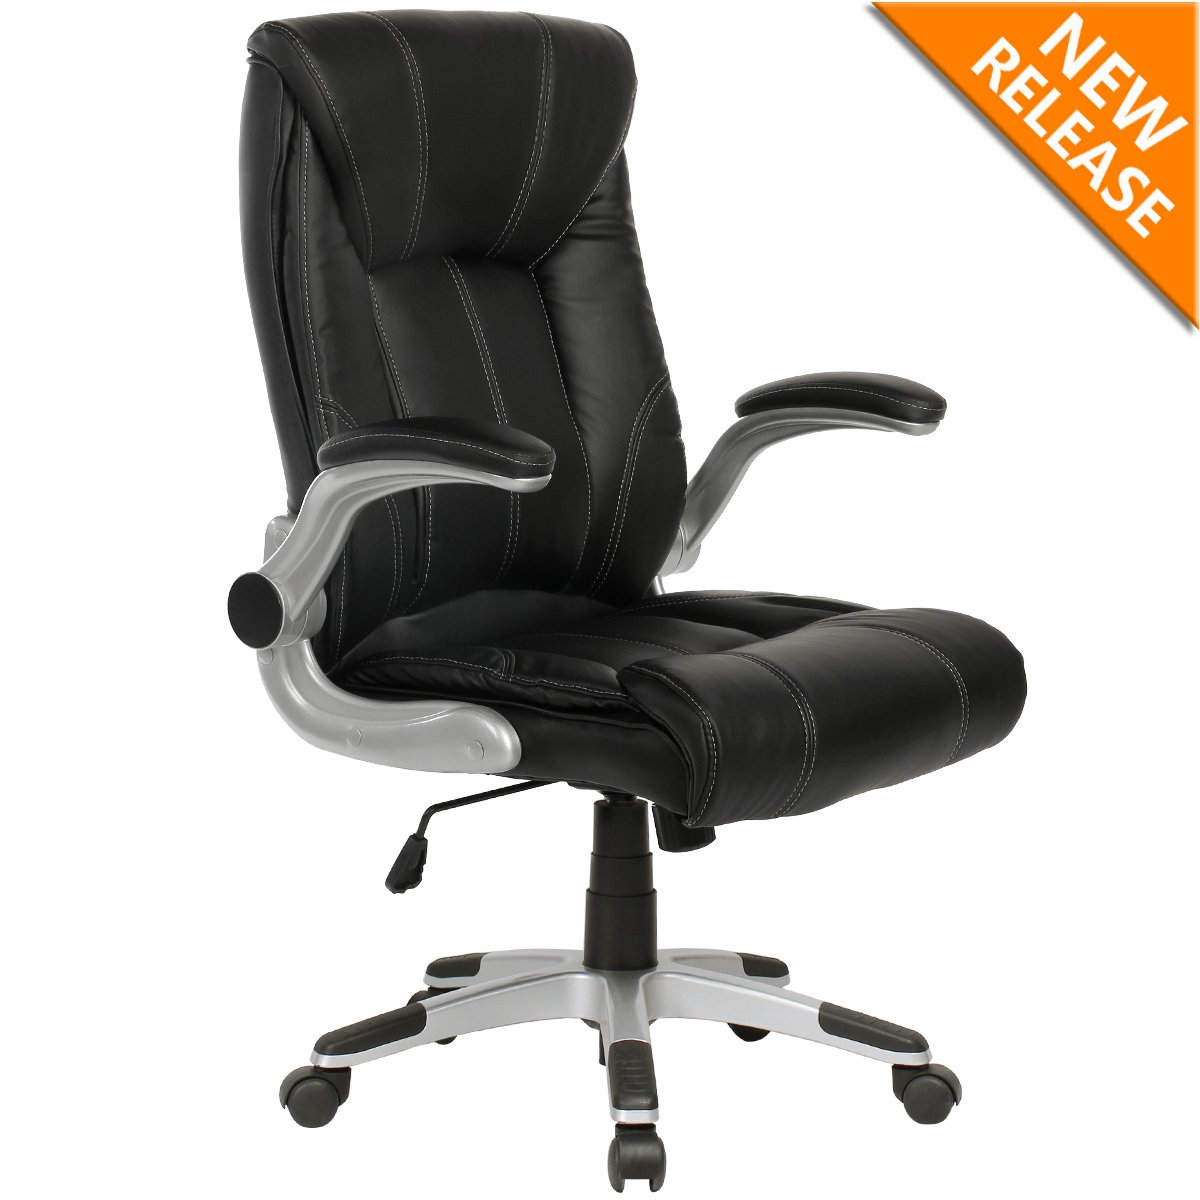 YAMASORO Ergonomic High-Back Executive Office Chair PU Leather Computer Desk Chair with Flip-up Arms and Back Support by YAMASORO (Image #1)